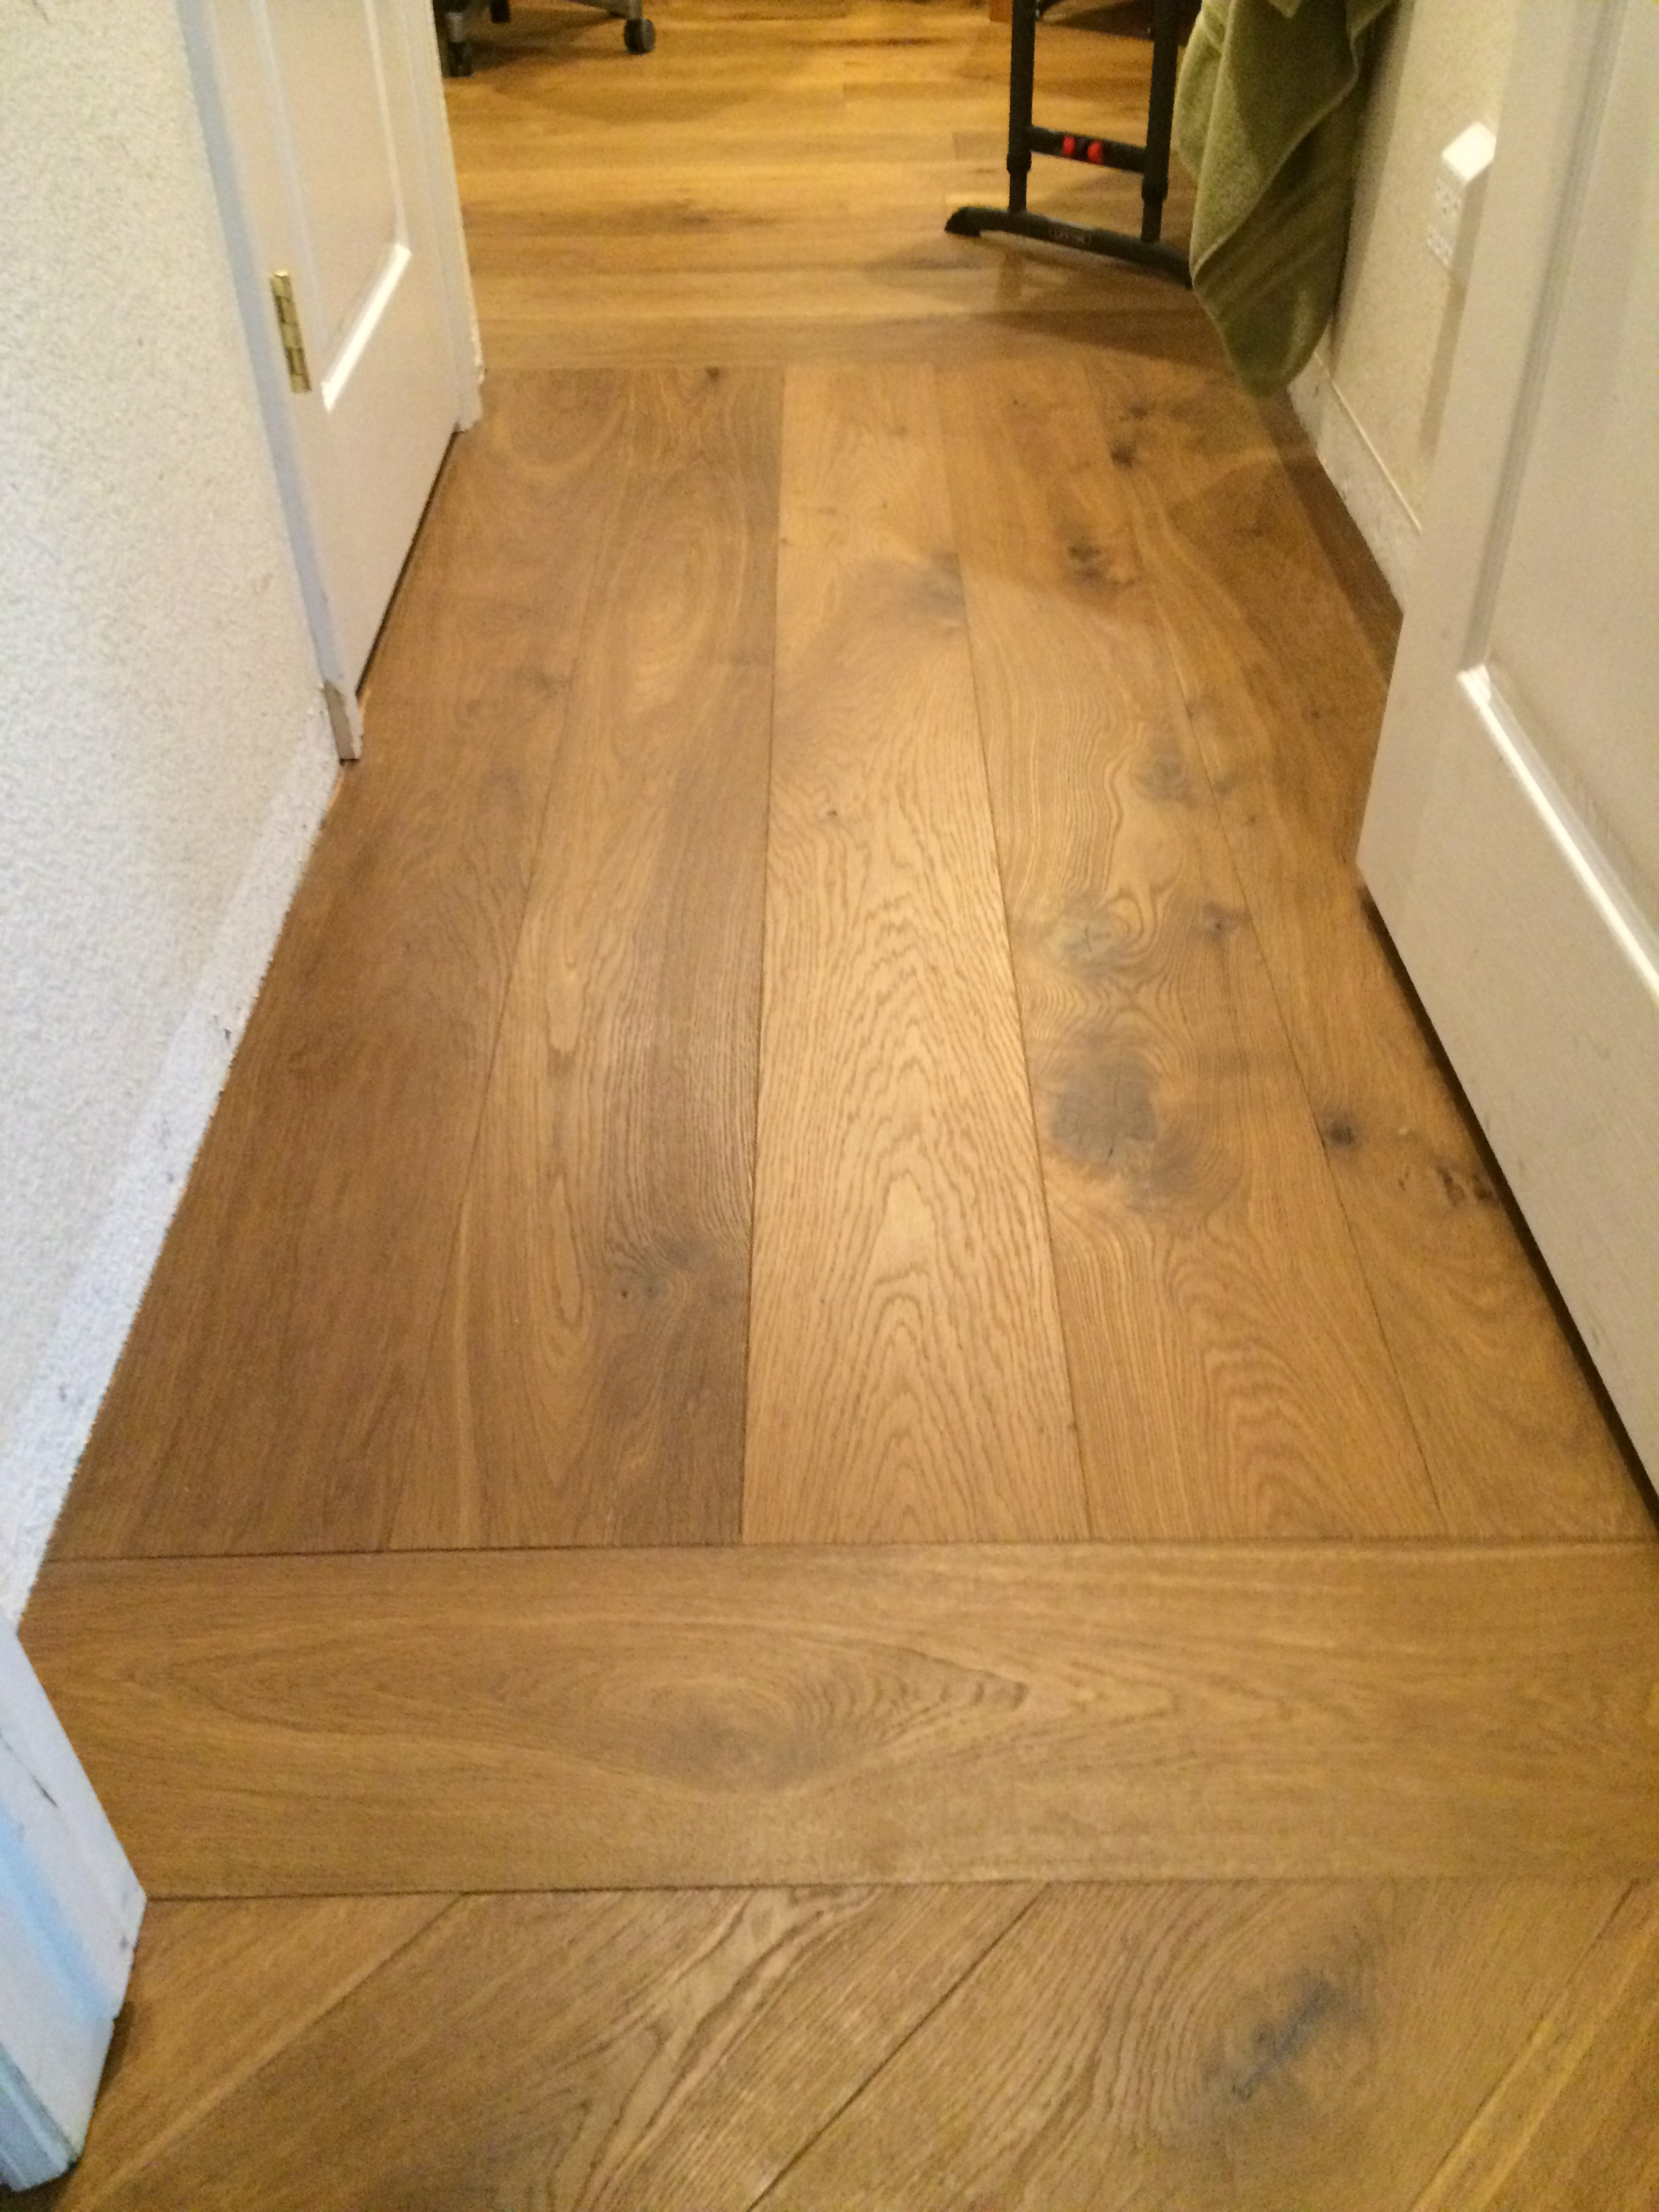 Diablo flooring inc hallmark hardwood walnut creek ca for Hardwood flooring inc